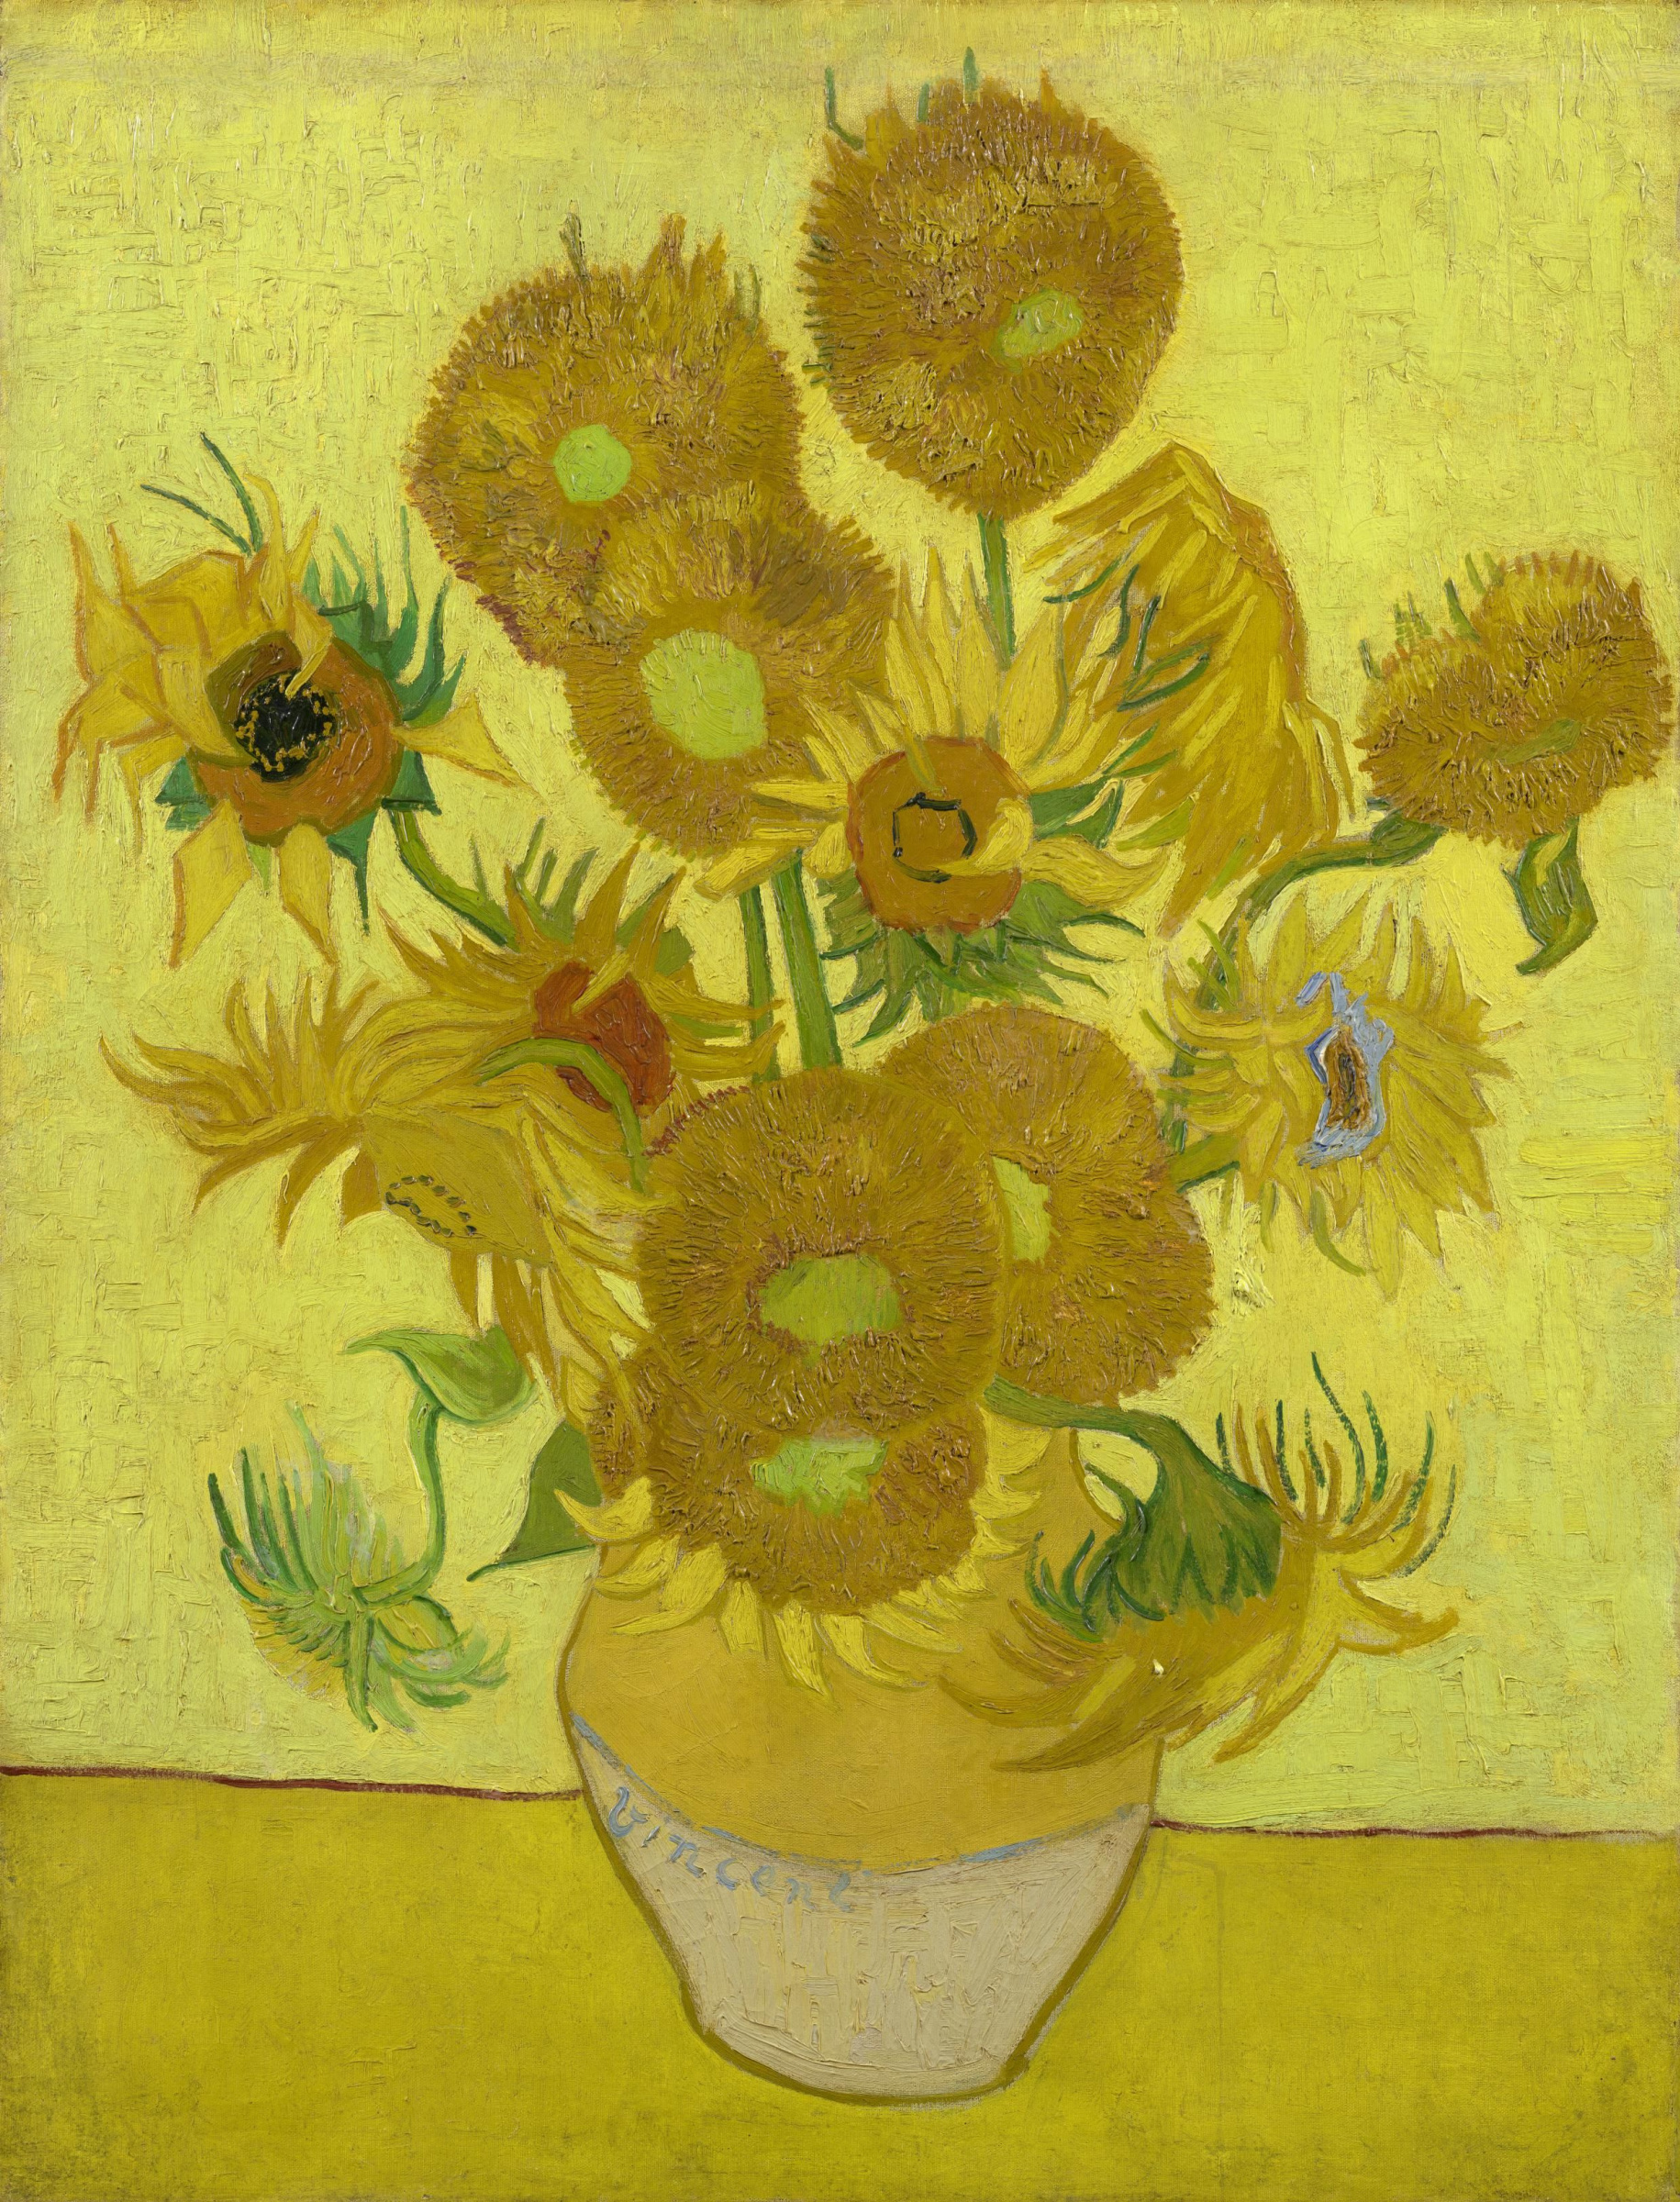 Vincent van Gogh. Sunflowers in yellow vase